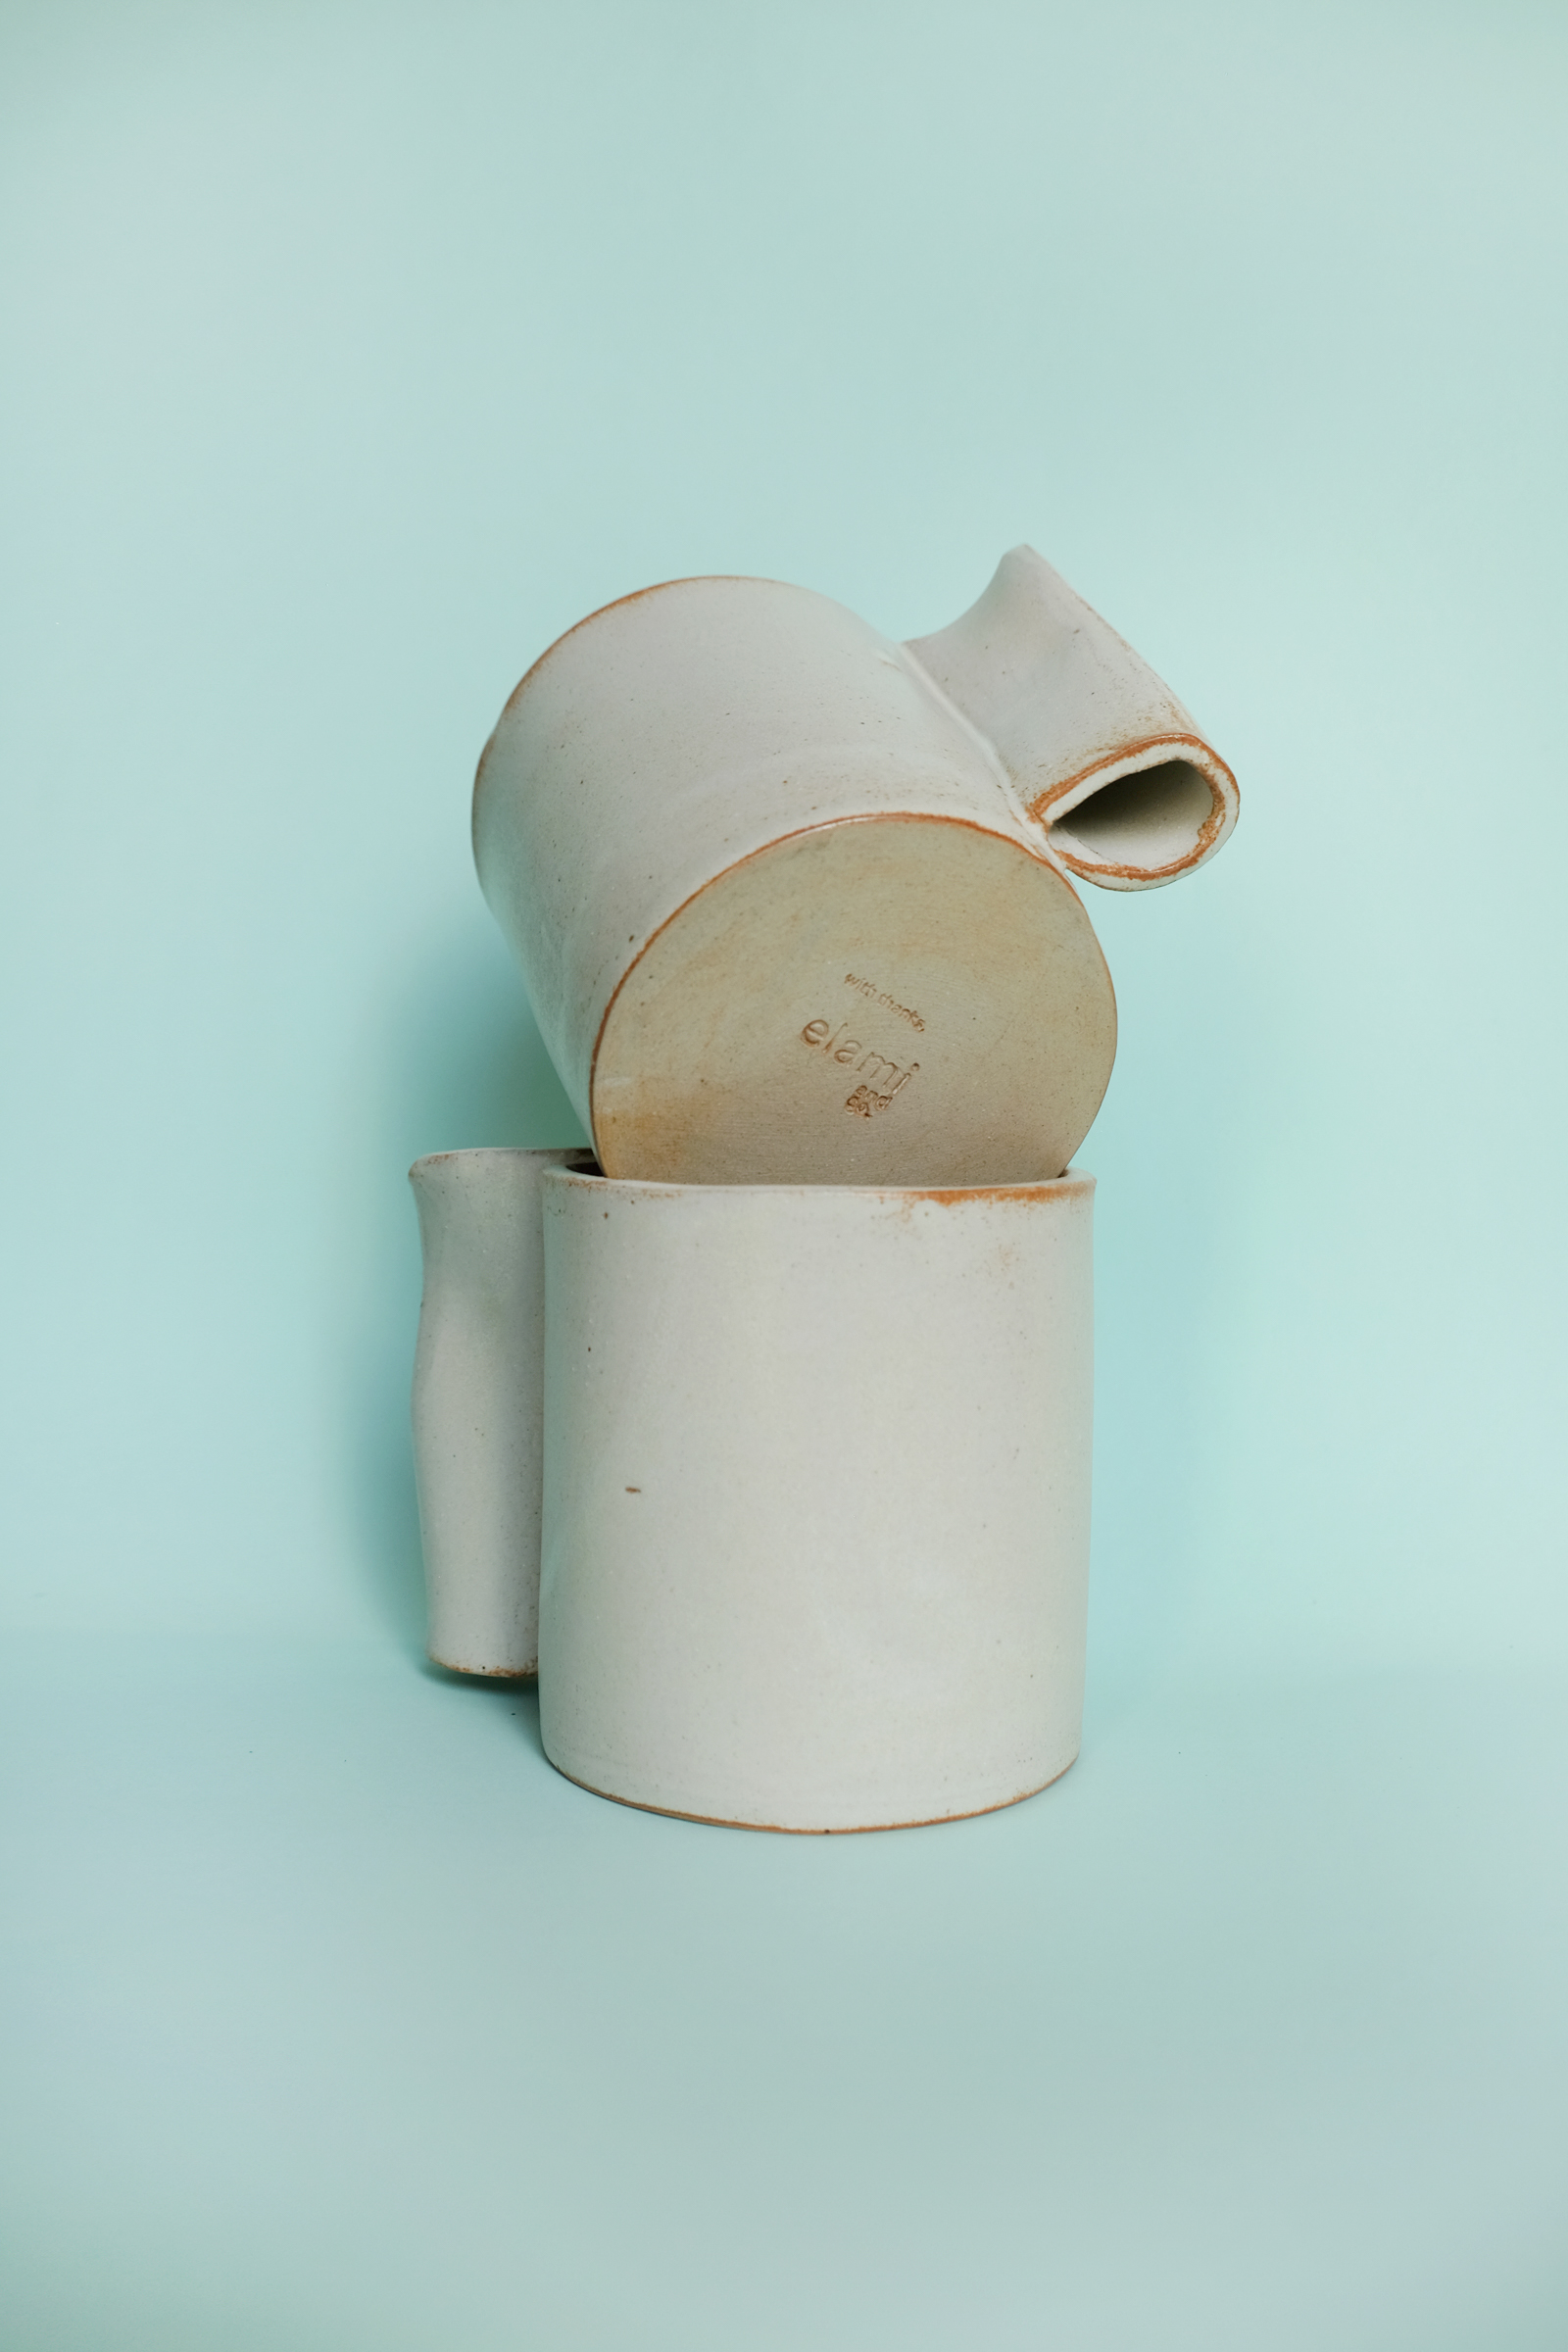 Our limited edition Elami and Co mugs created with Sari Api Ceramics.